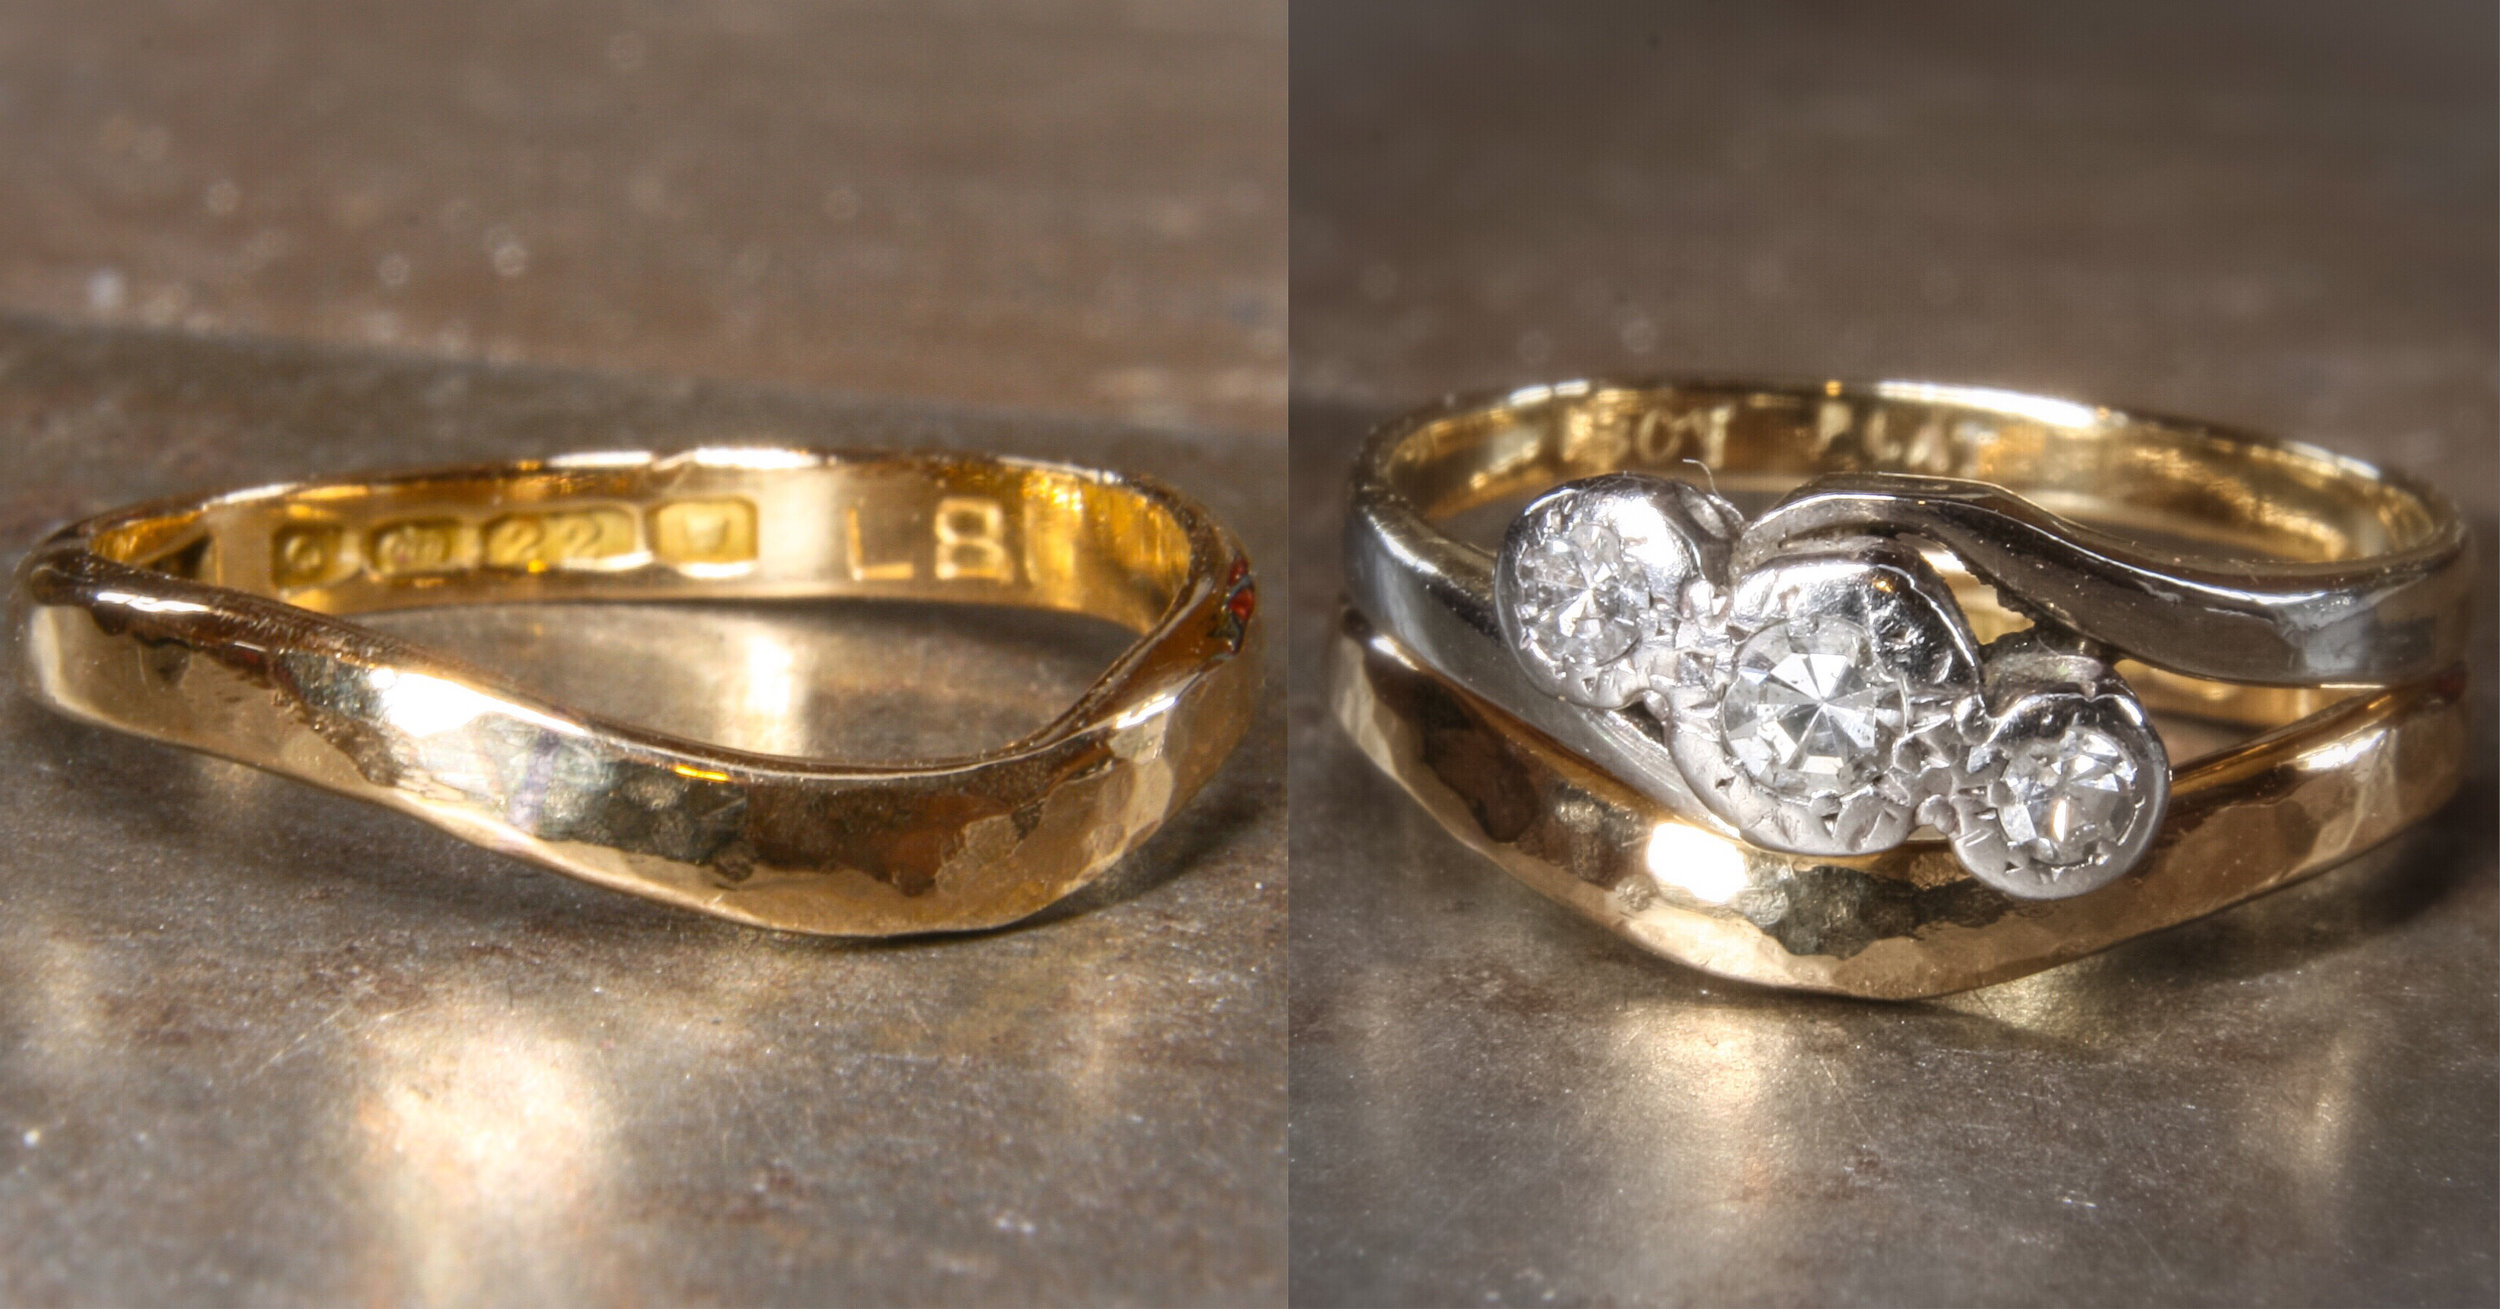 Remodelled 22ct gold wedding ring